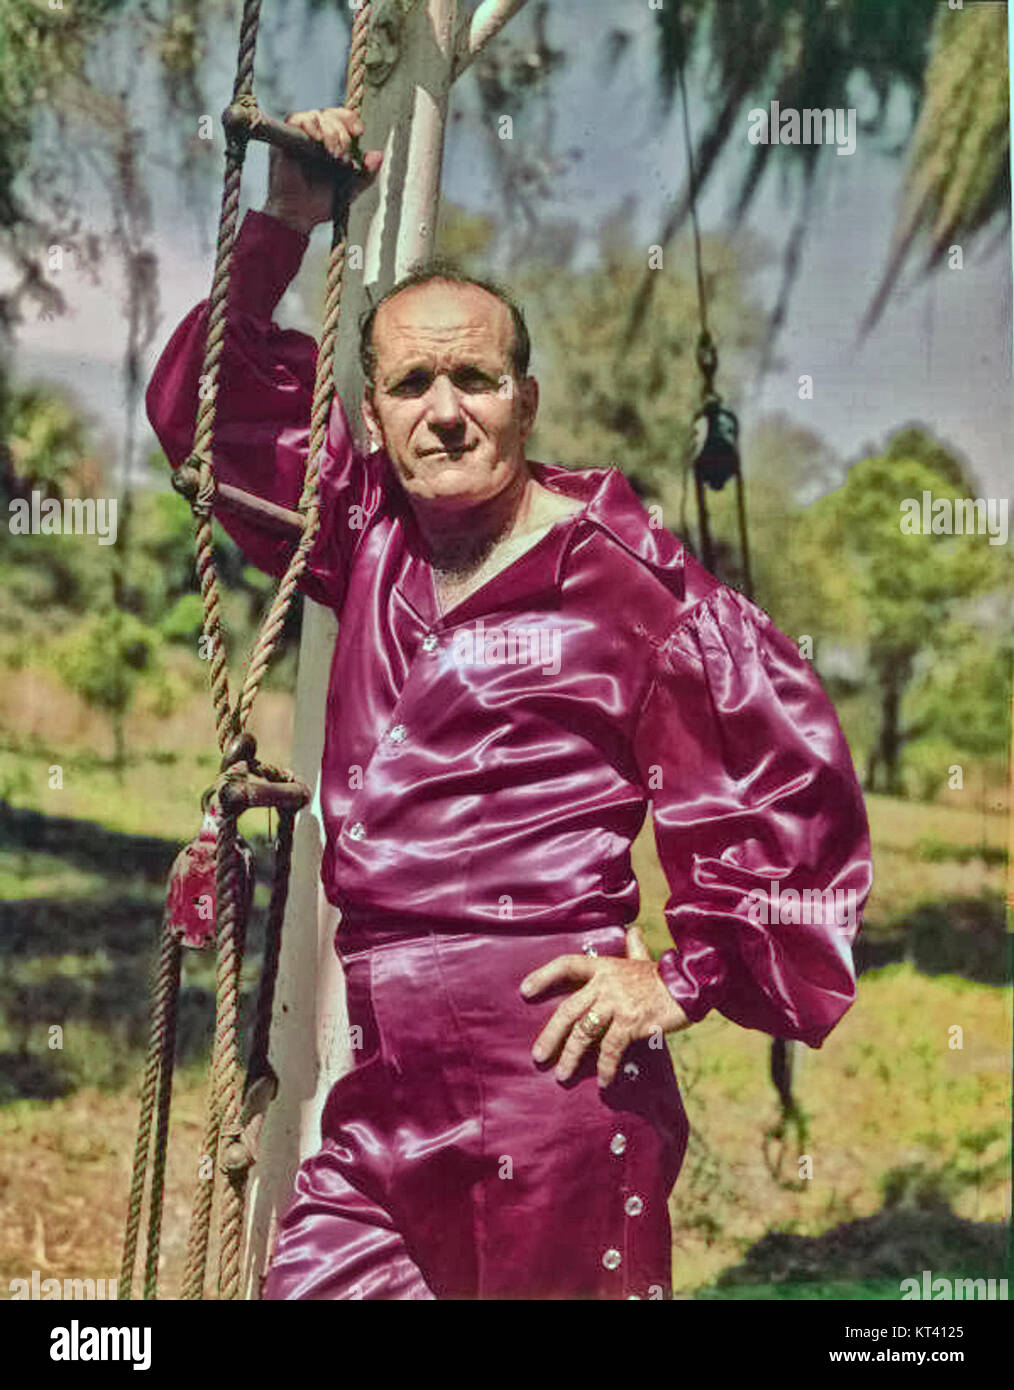 Karl Wallenda in Sarasota, Florida - Stock Image